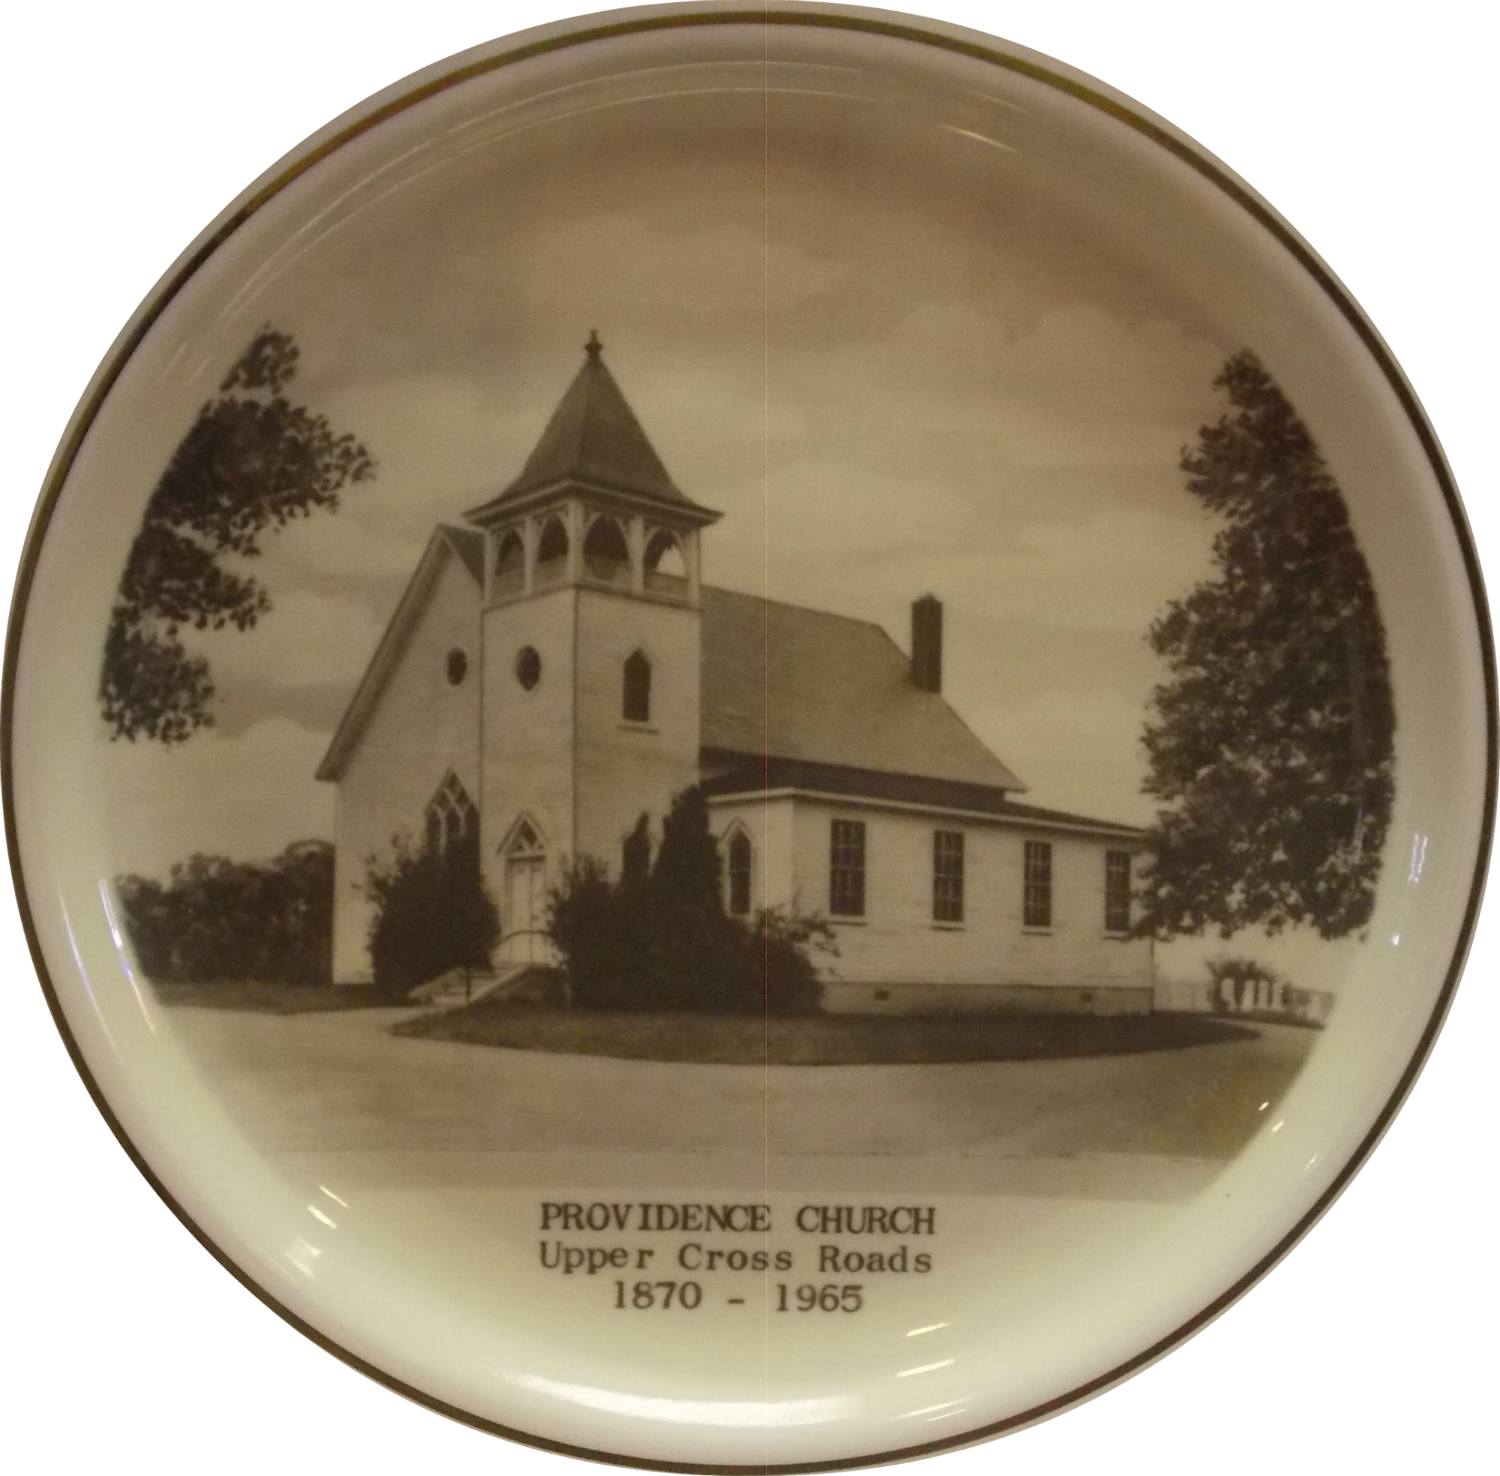 A plate with a historical picture of Providence Church